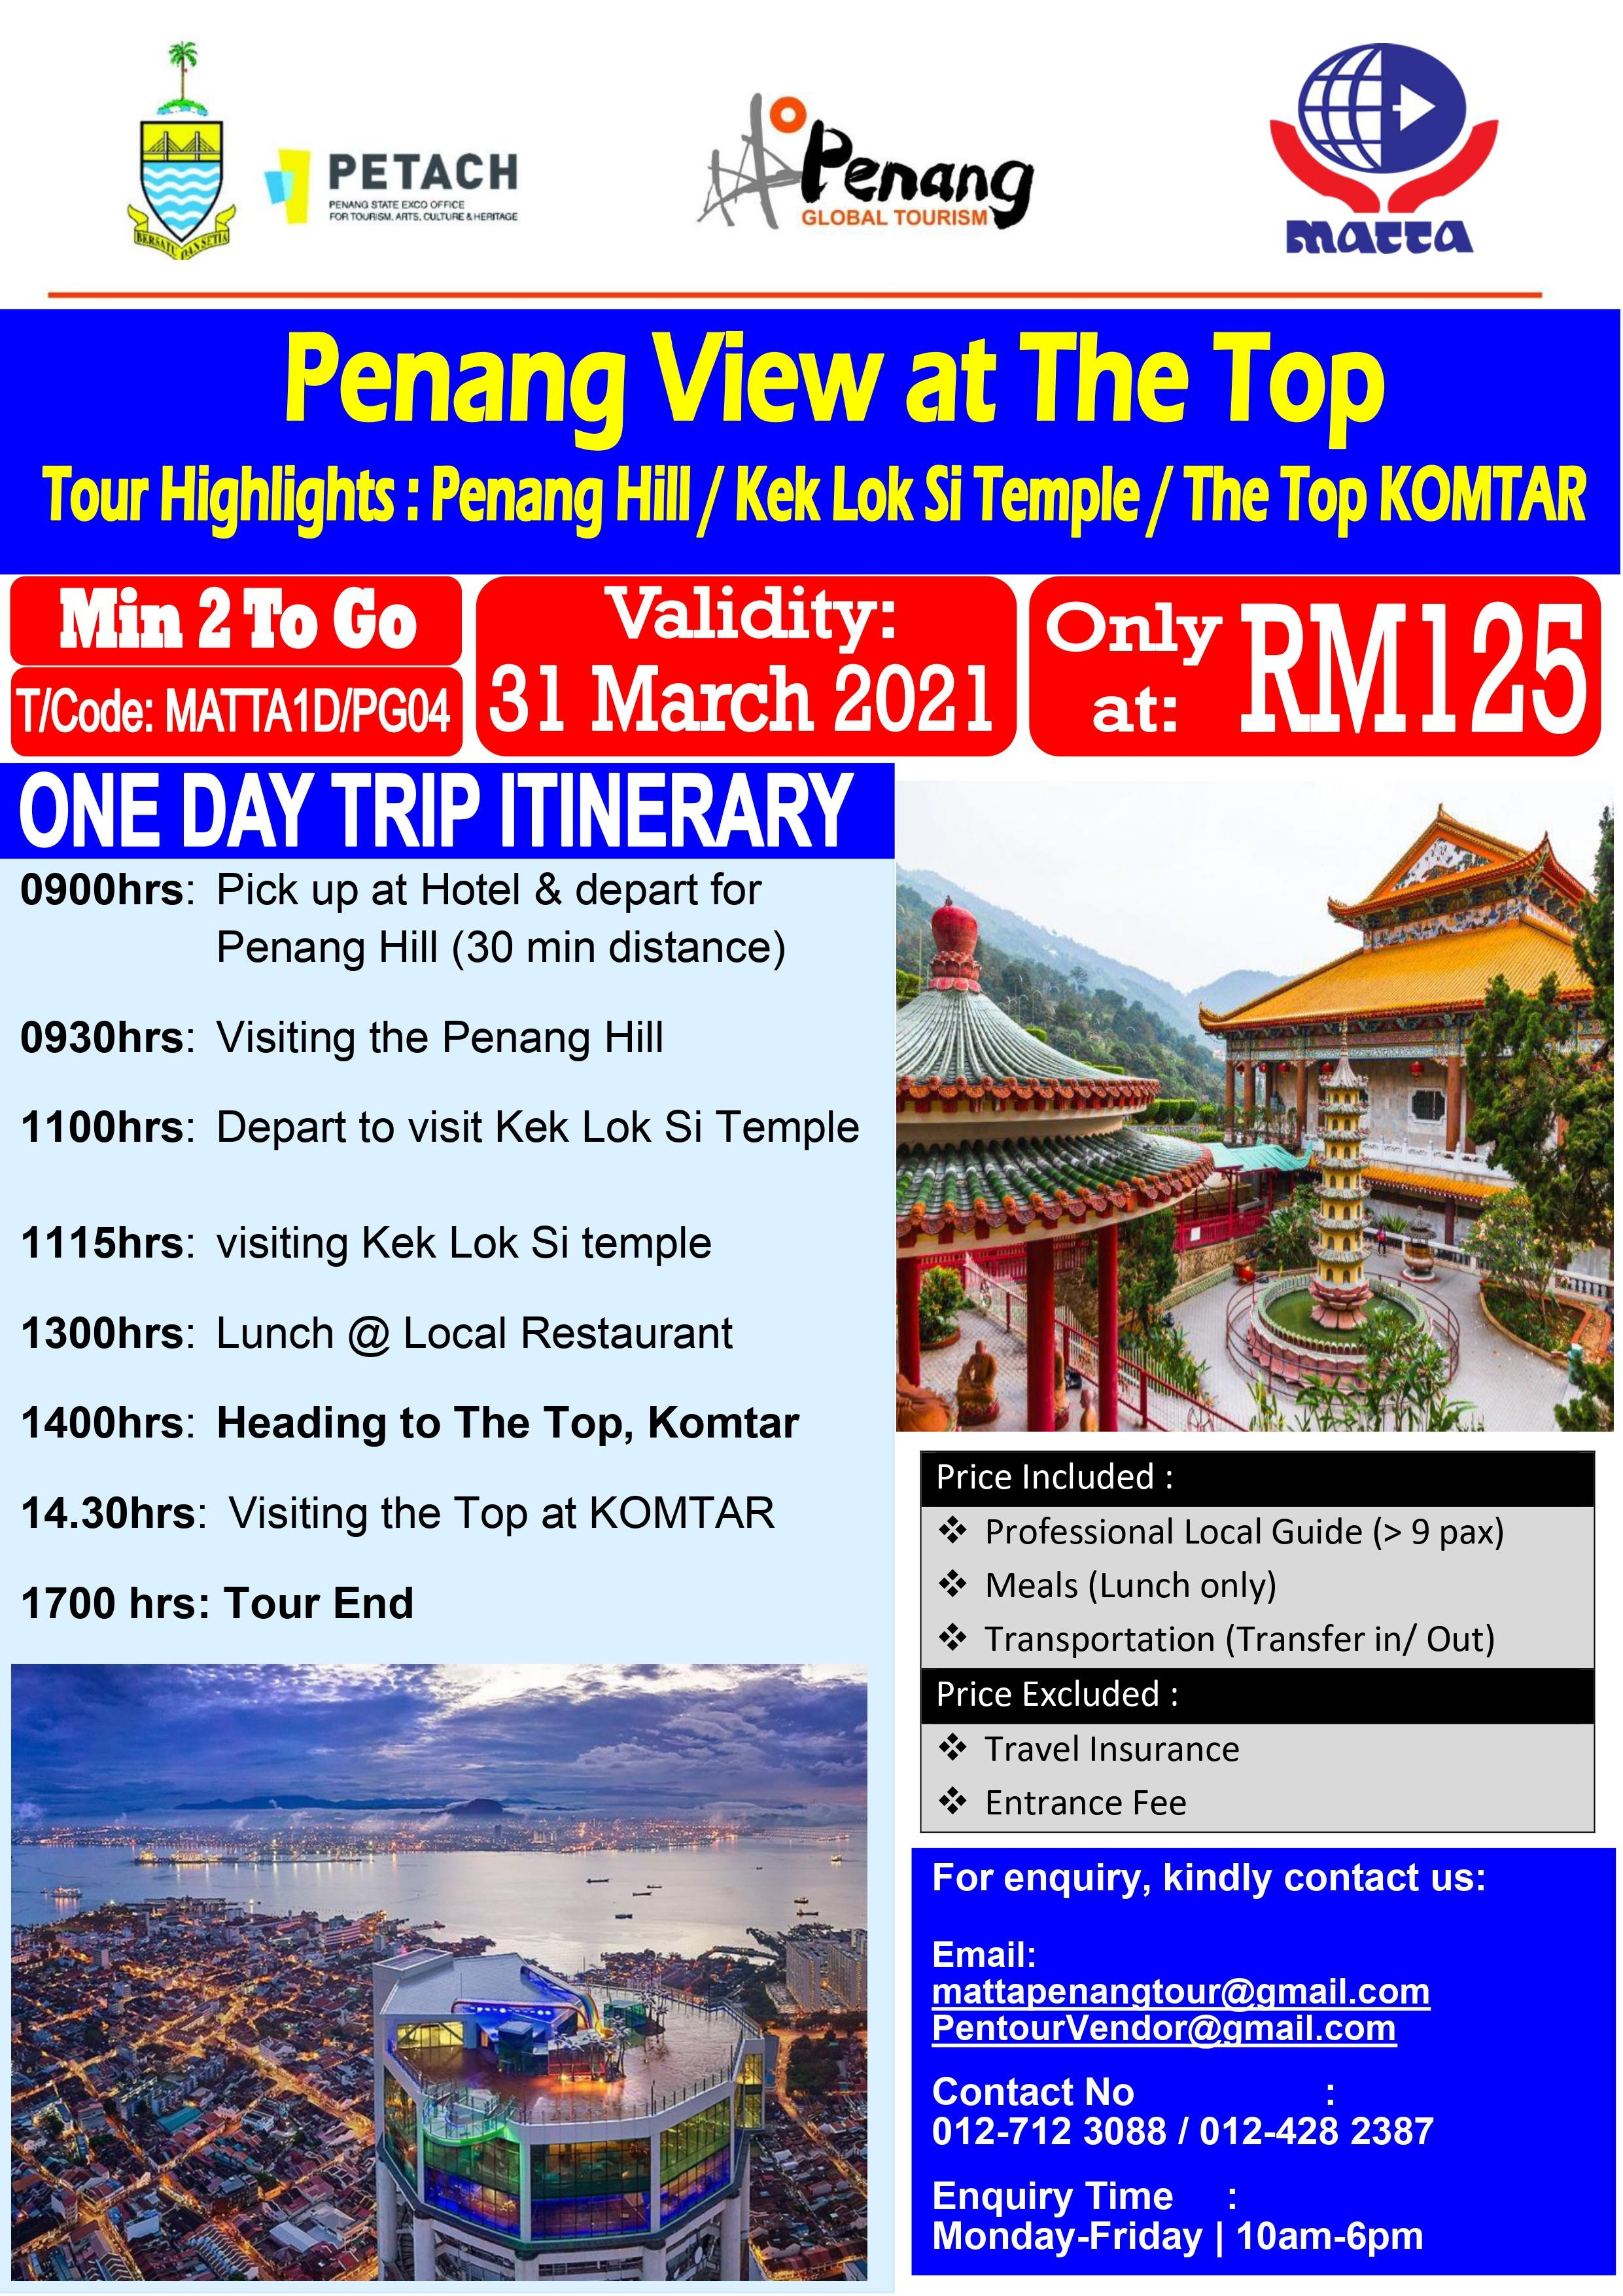 Penang View At The Top - 1 Day